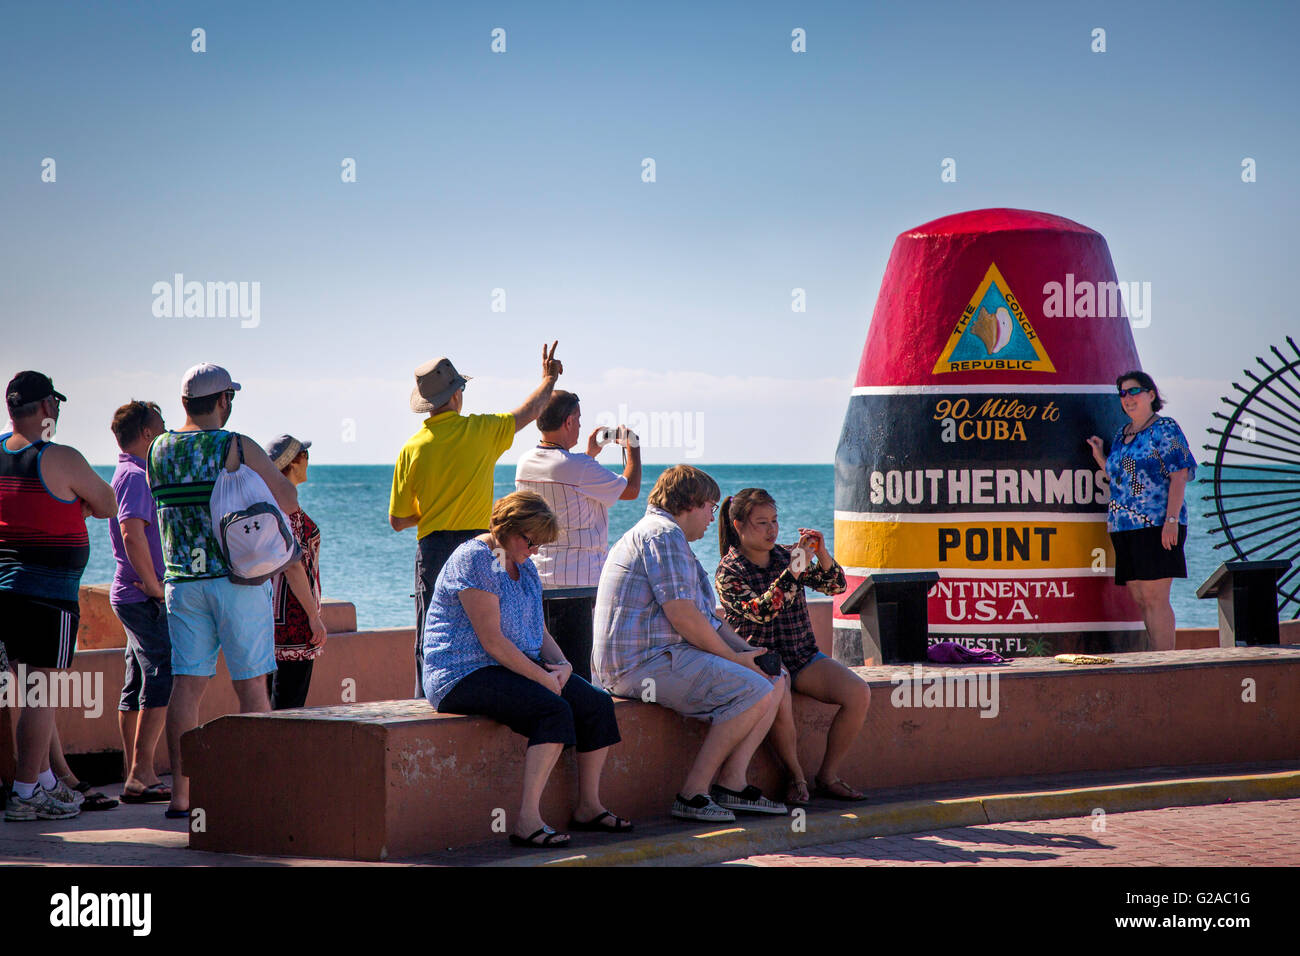 Tourists photographing themselves at the Marker at the Southernmost Point in America, Key West, Florida, USA - Stock Image